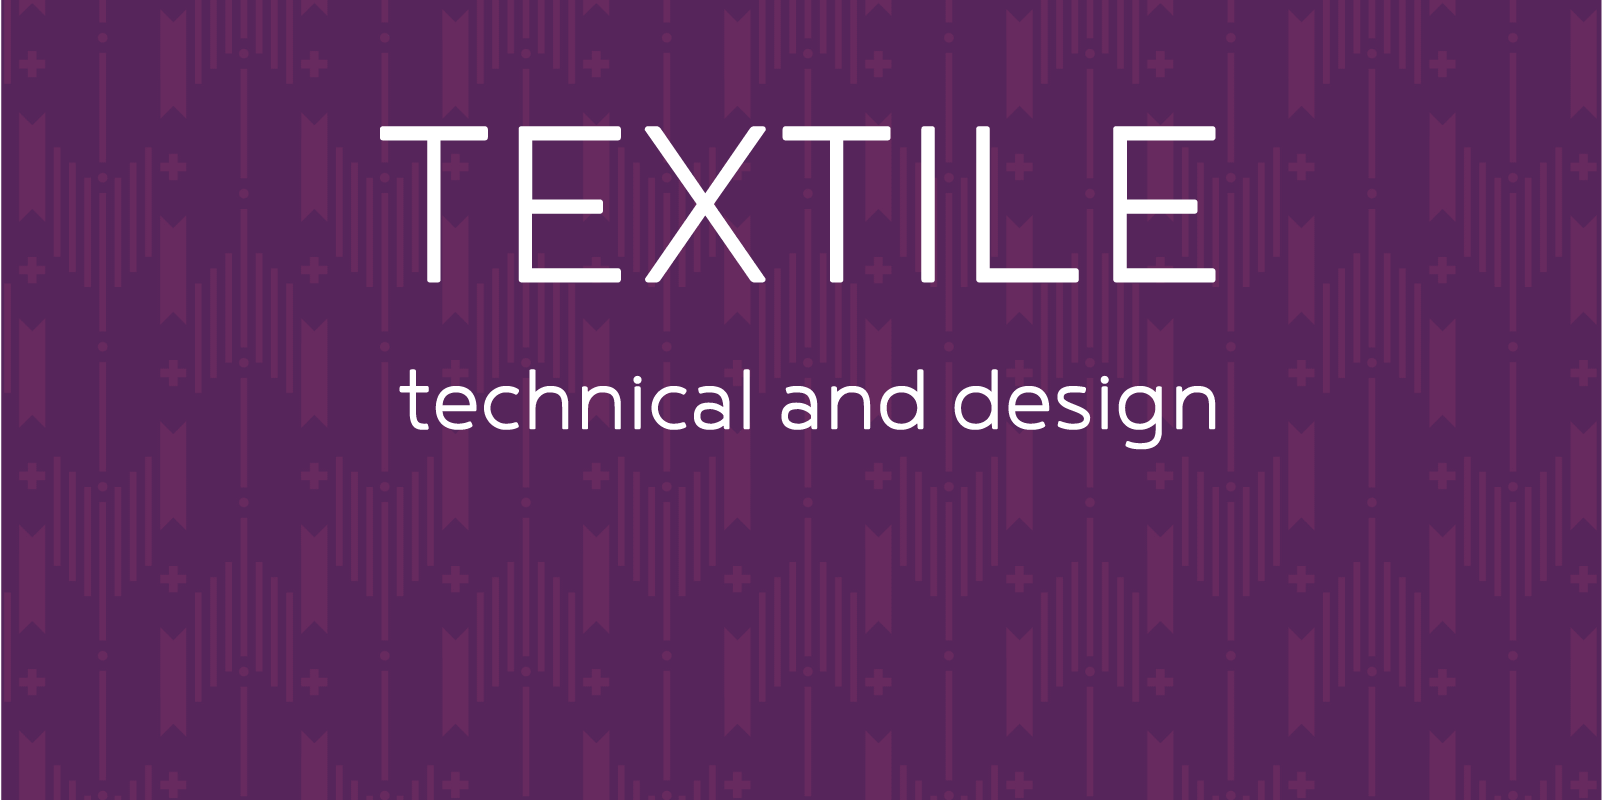 digital textile-digital-design-courses online